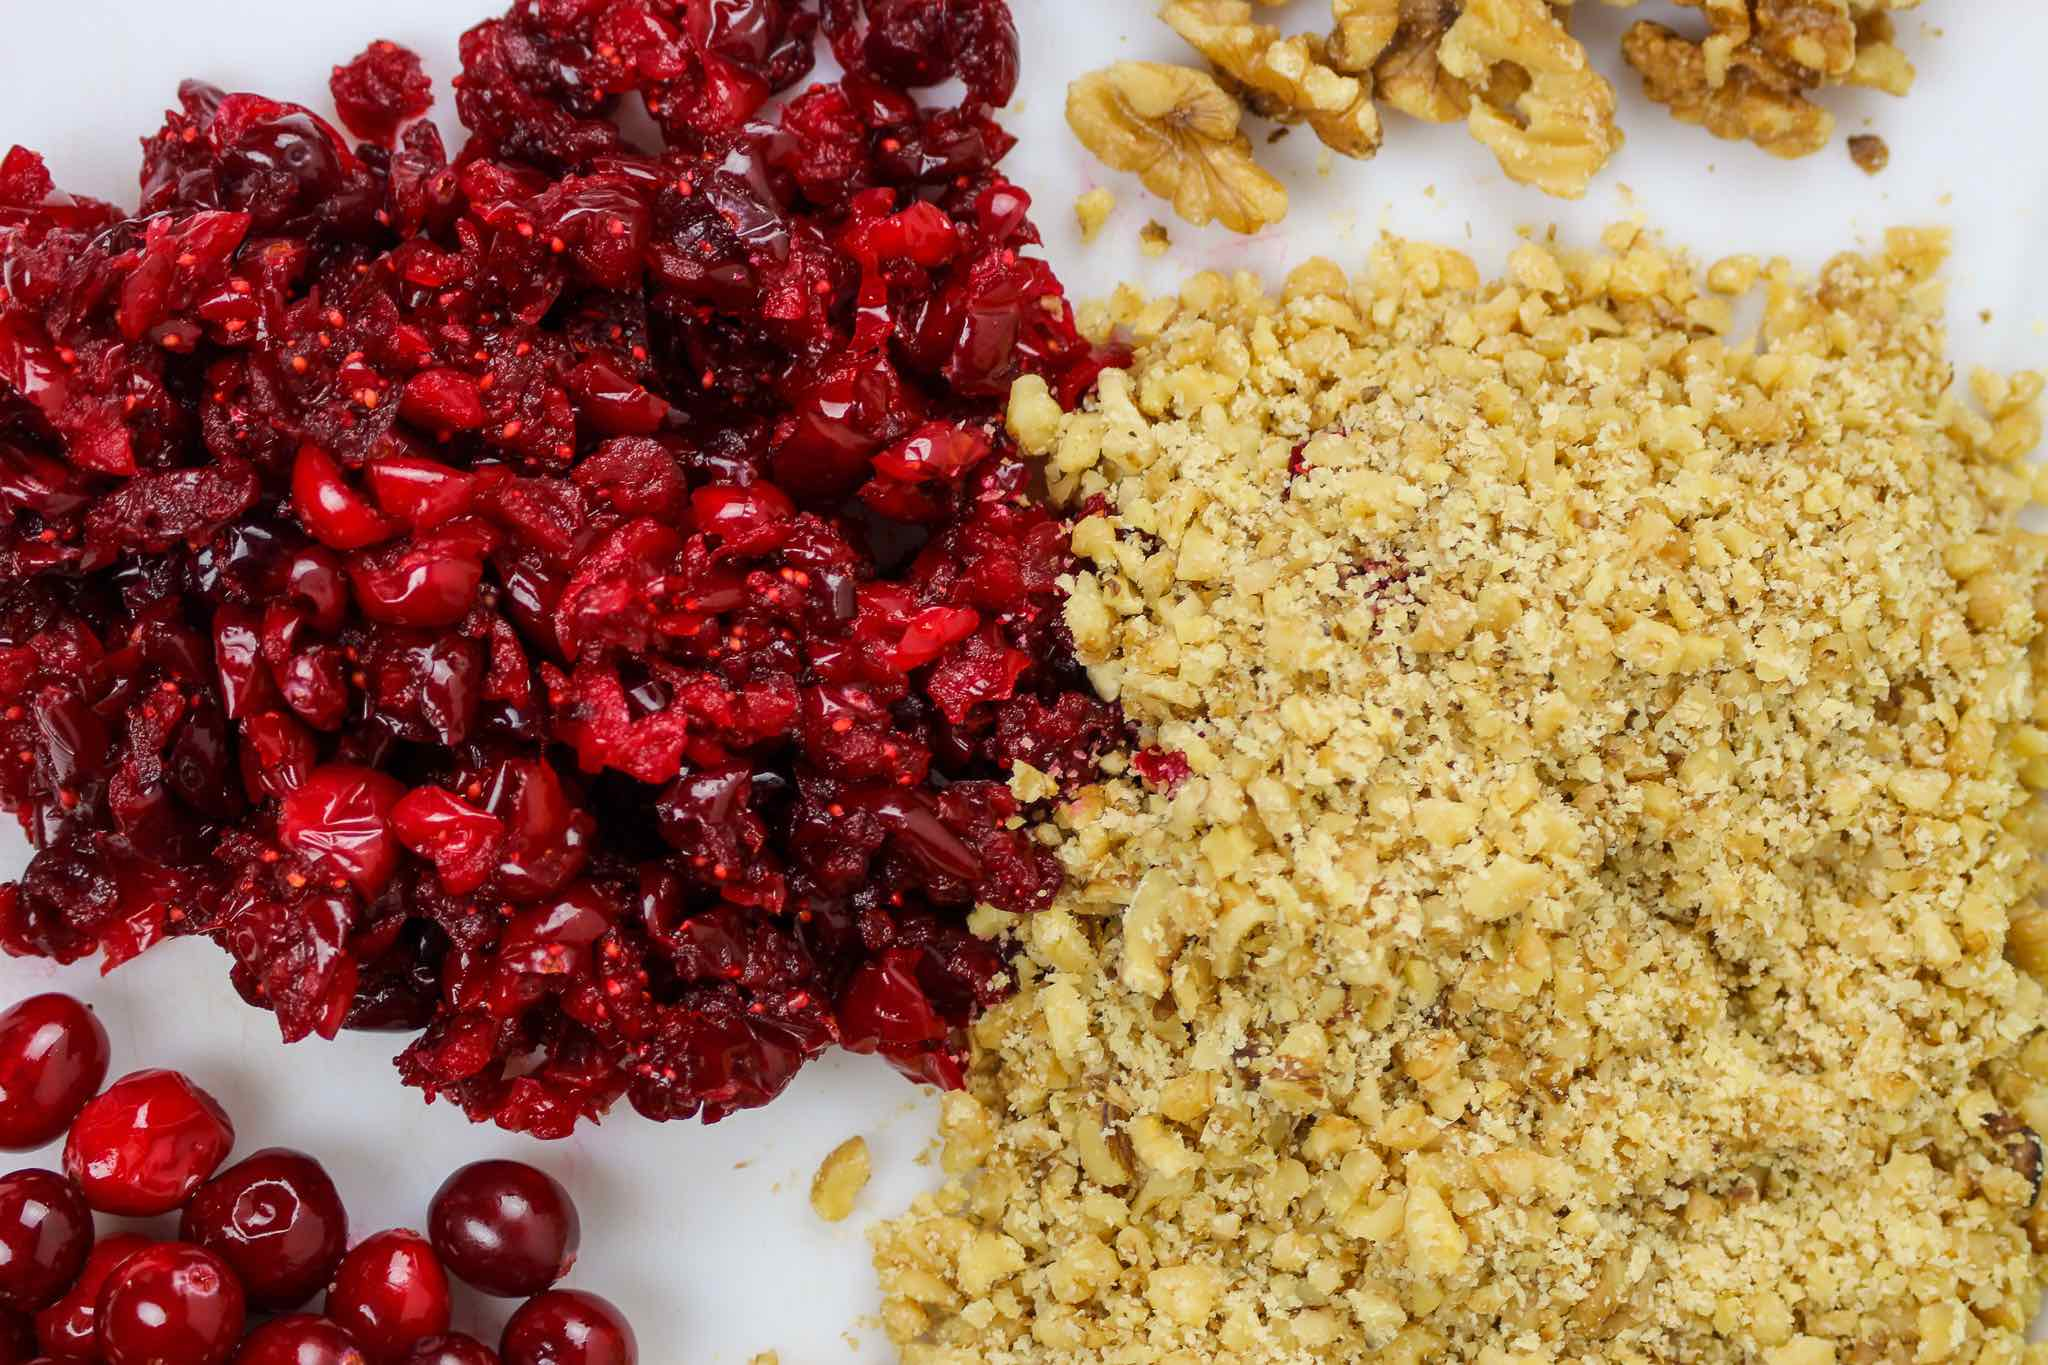 chopped cranberries and walnuts